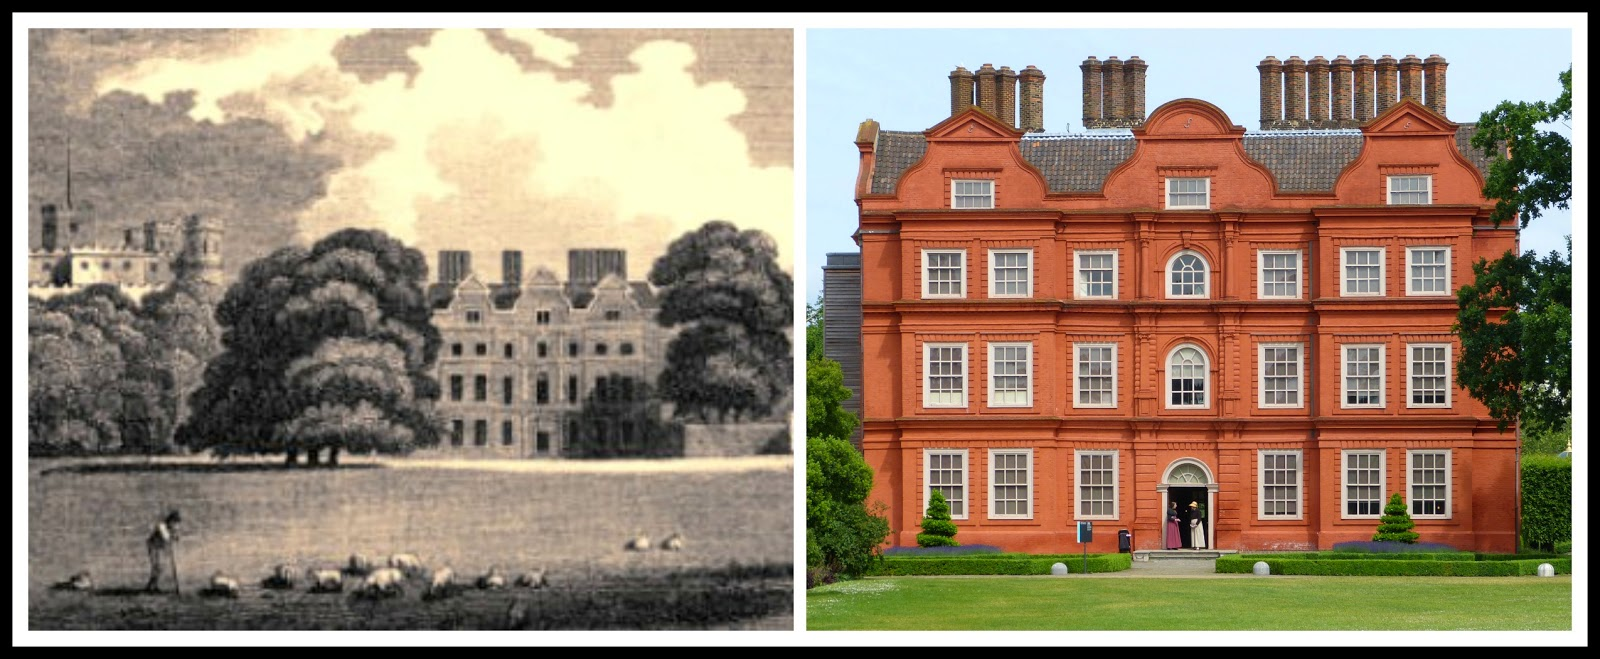 Left: The old palace at Kew from Memoirs of HM Sophia Charlotte   of Mecklenburg Strelitz, Queen of Great Britain by WM Craig (1818)  Right: Kew Palace today © Andrew Knowles